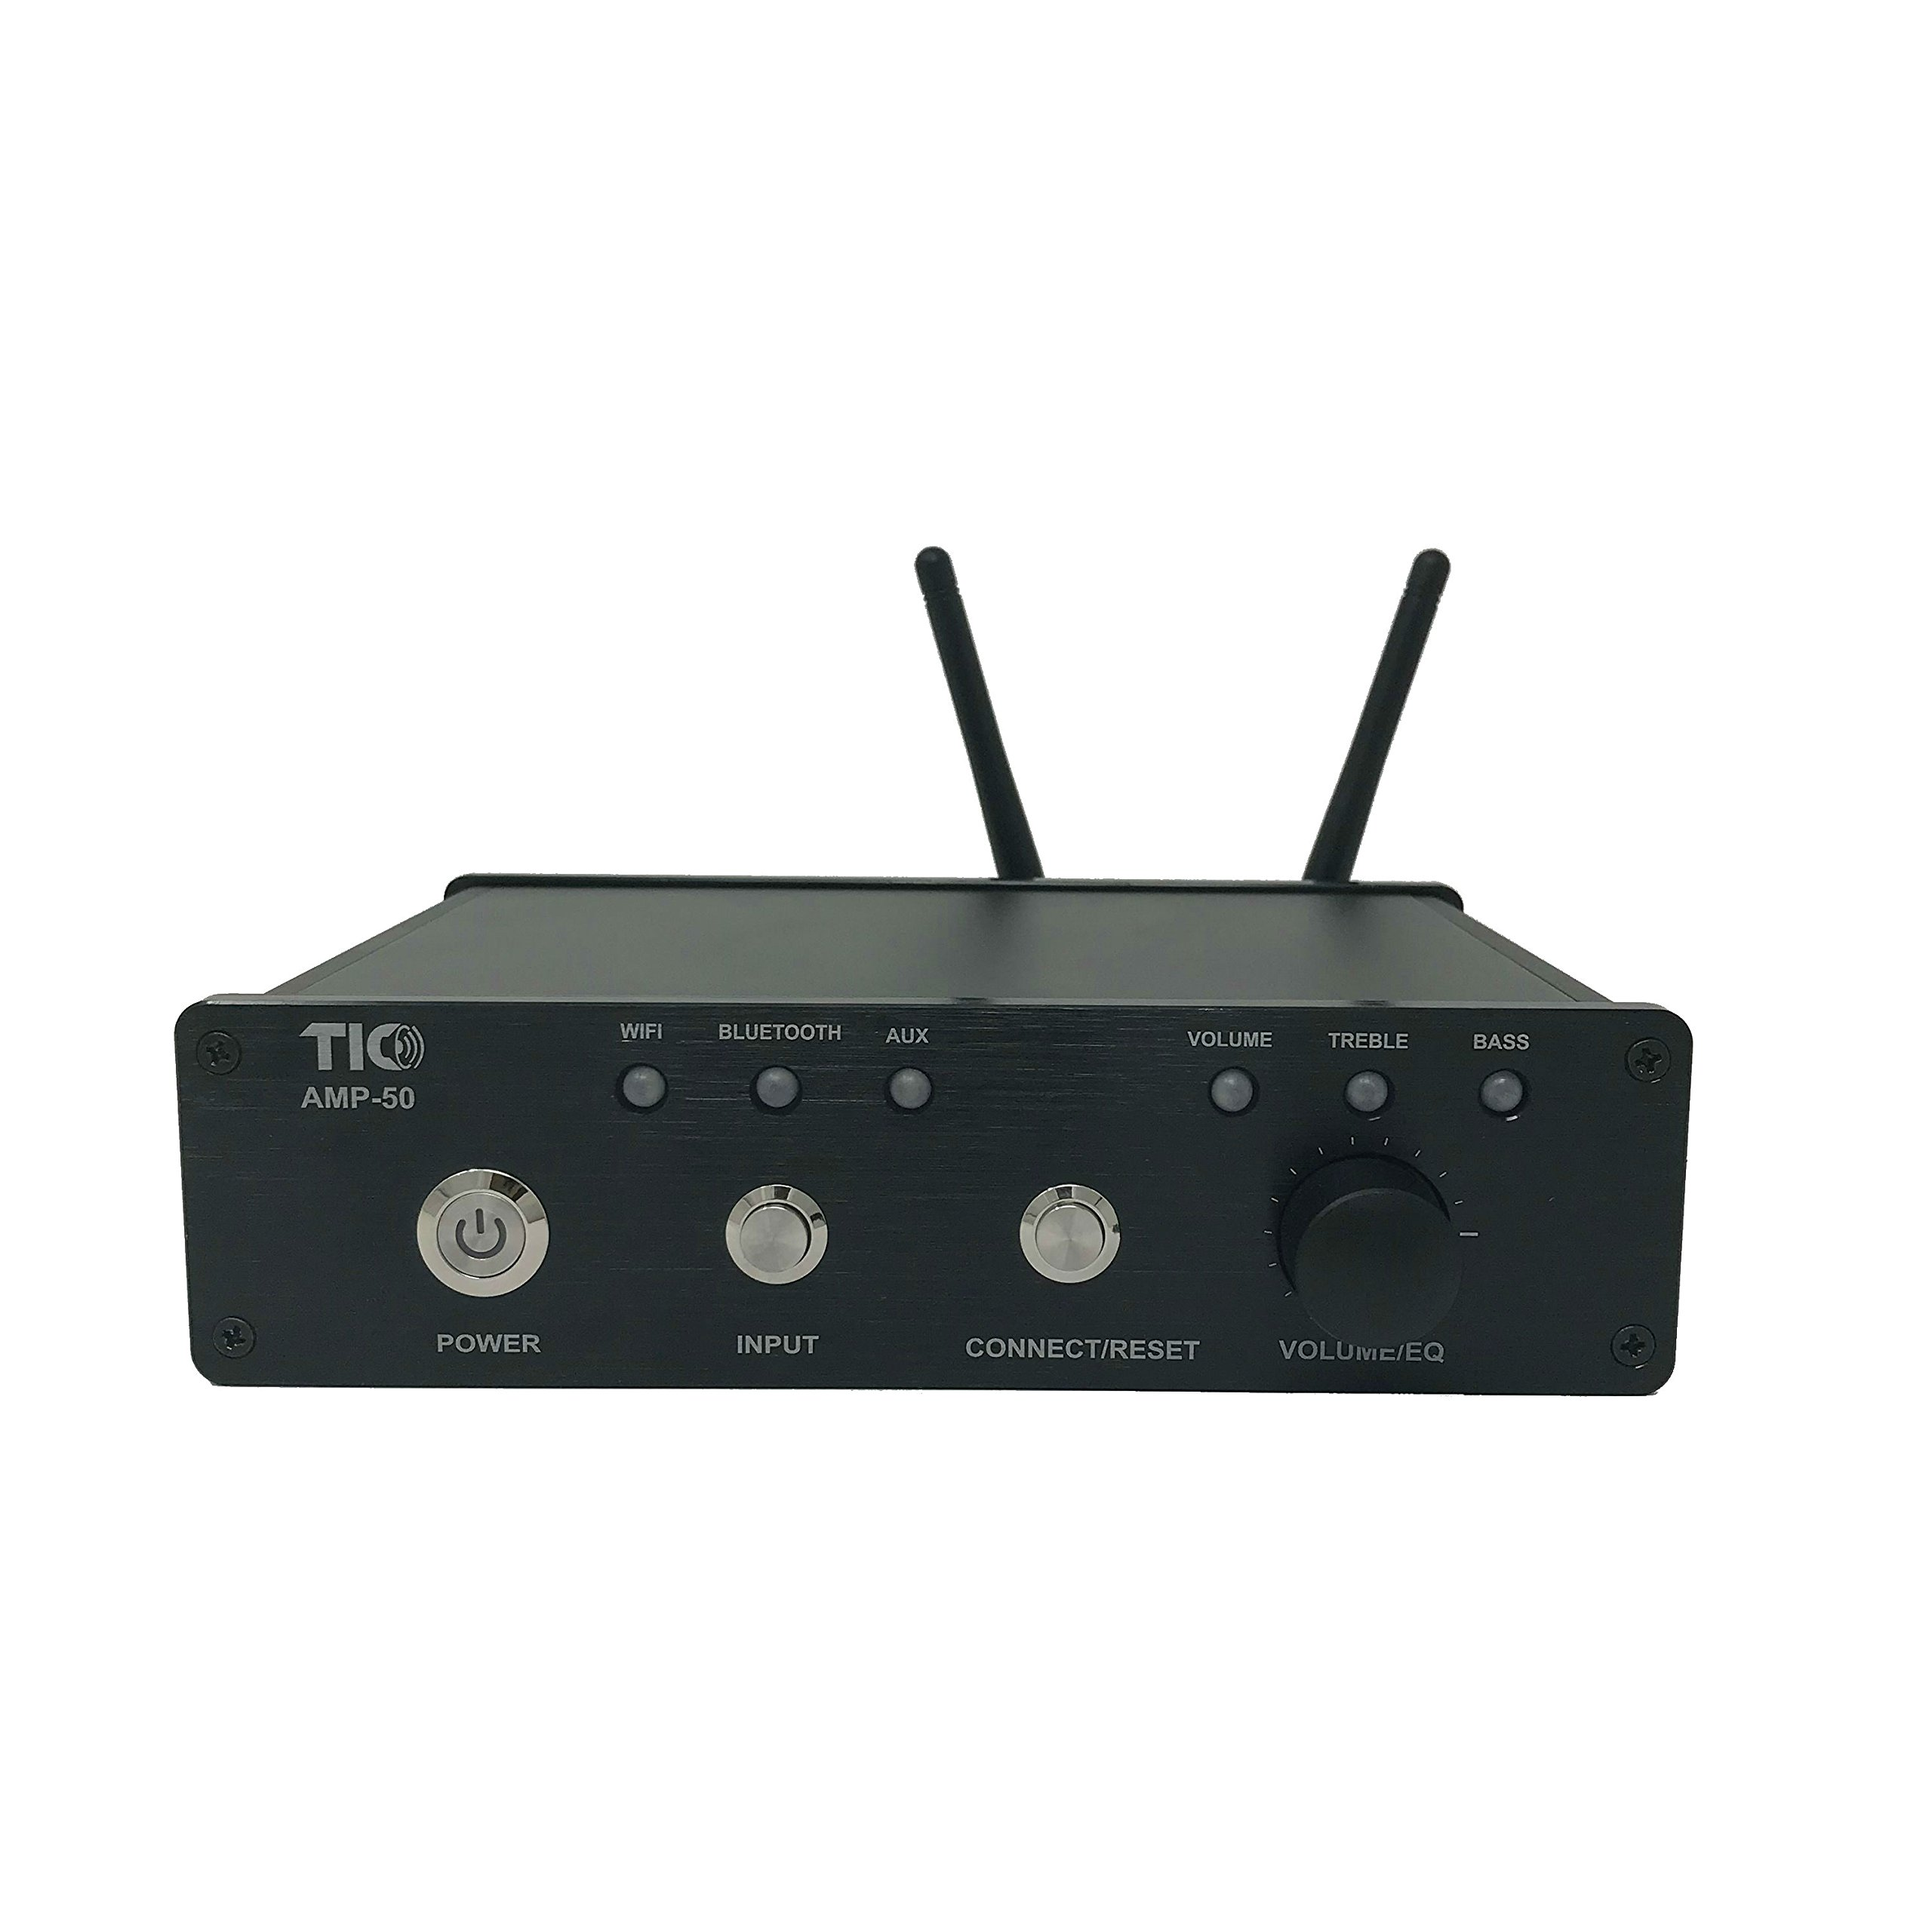 TIC AMP50 100W 2-Channel Indoor-Outdoor WiFi-Bluetooth Multiroom Amplifier with AirPlay